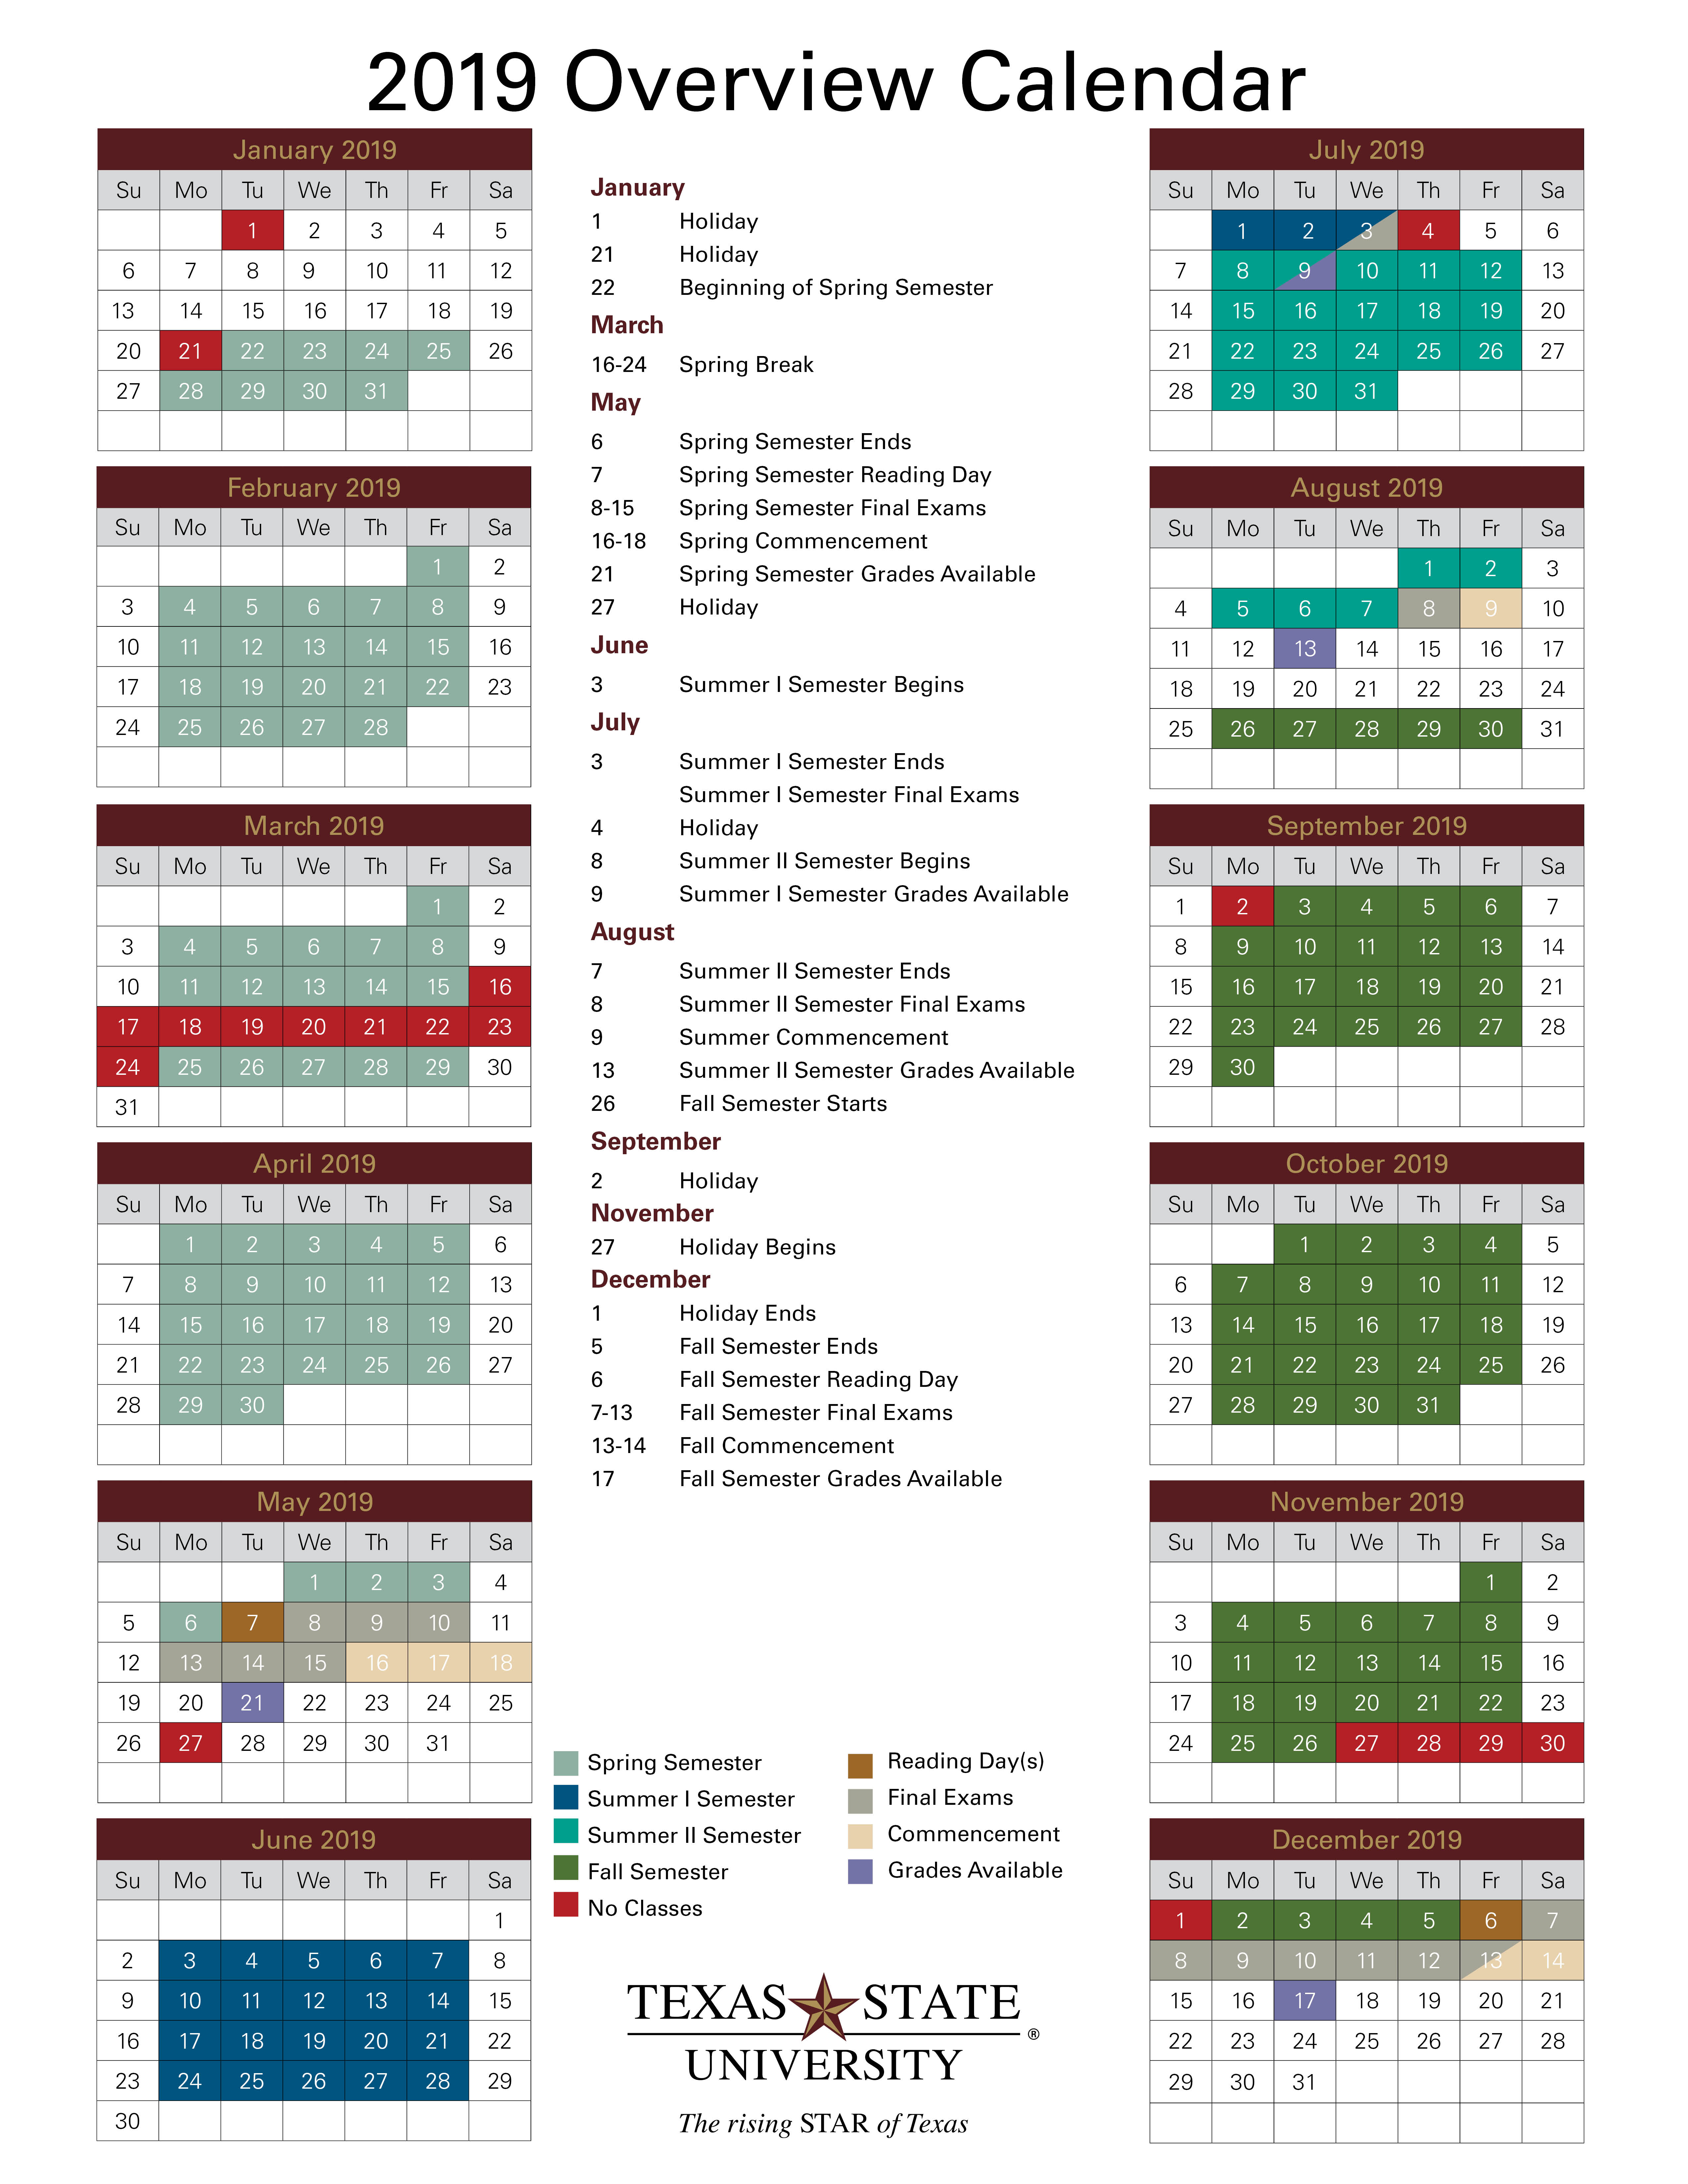 2019 Overview Calendar Image